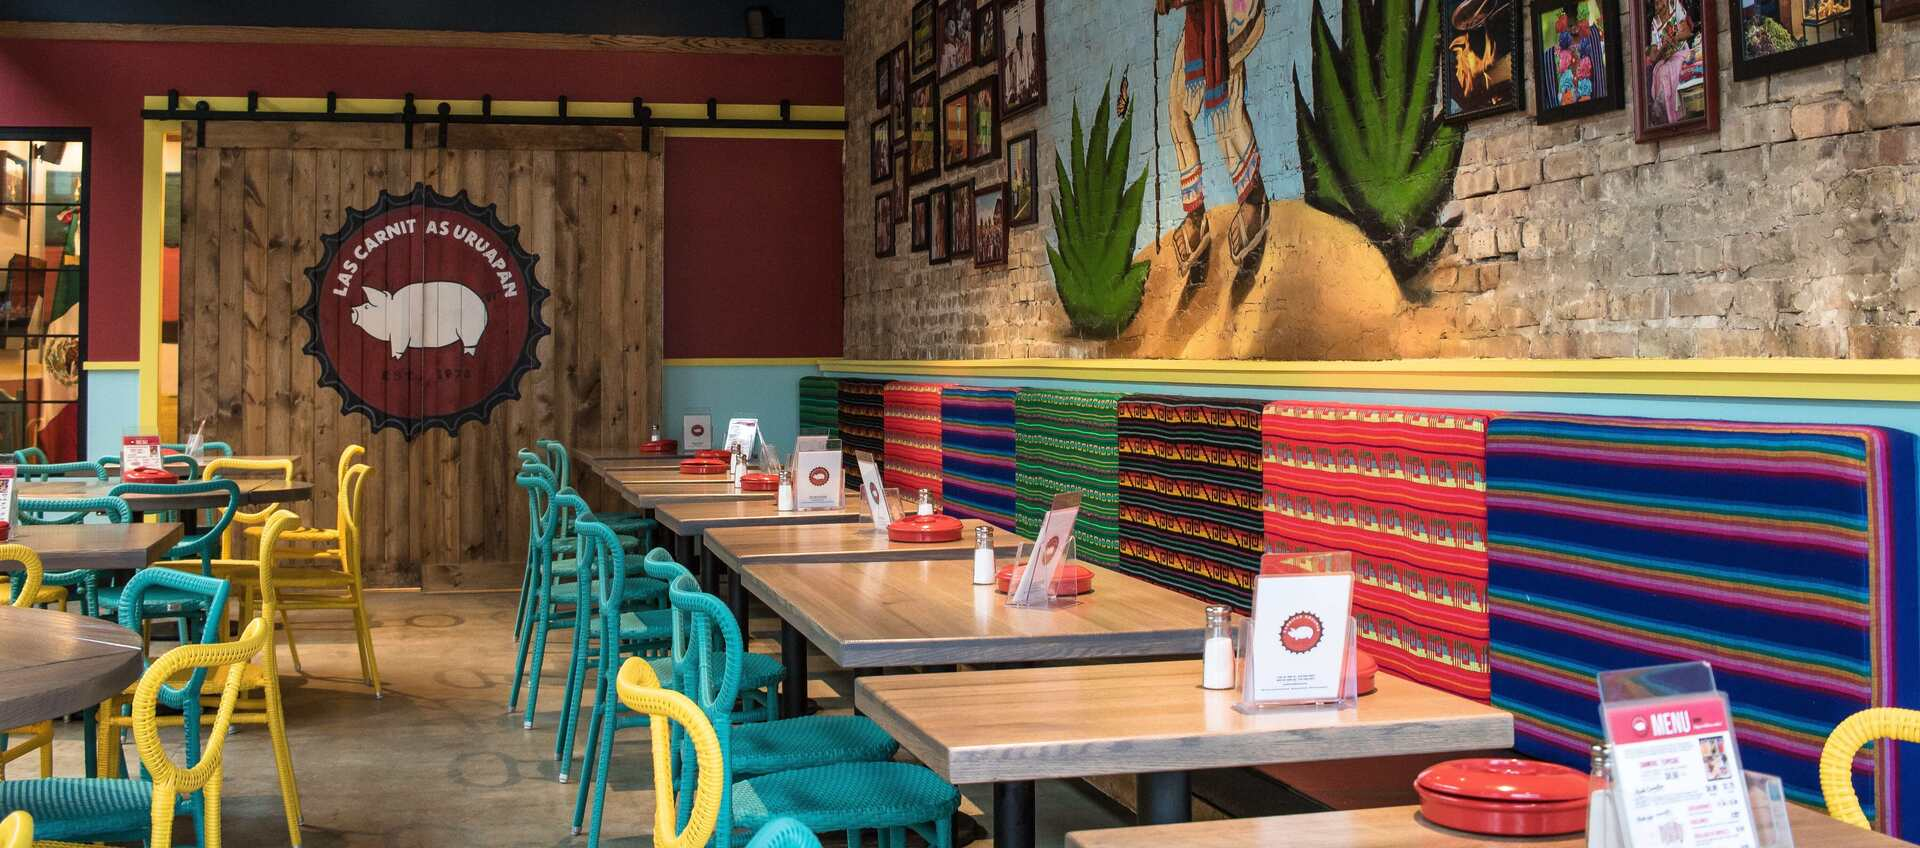 Colorful booth seating can be found at the Chicago location of Carnitas Uruapan provided by Contract Industries.